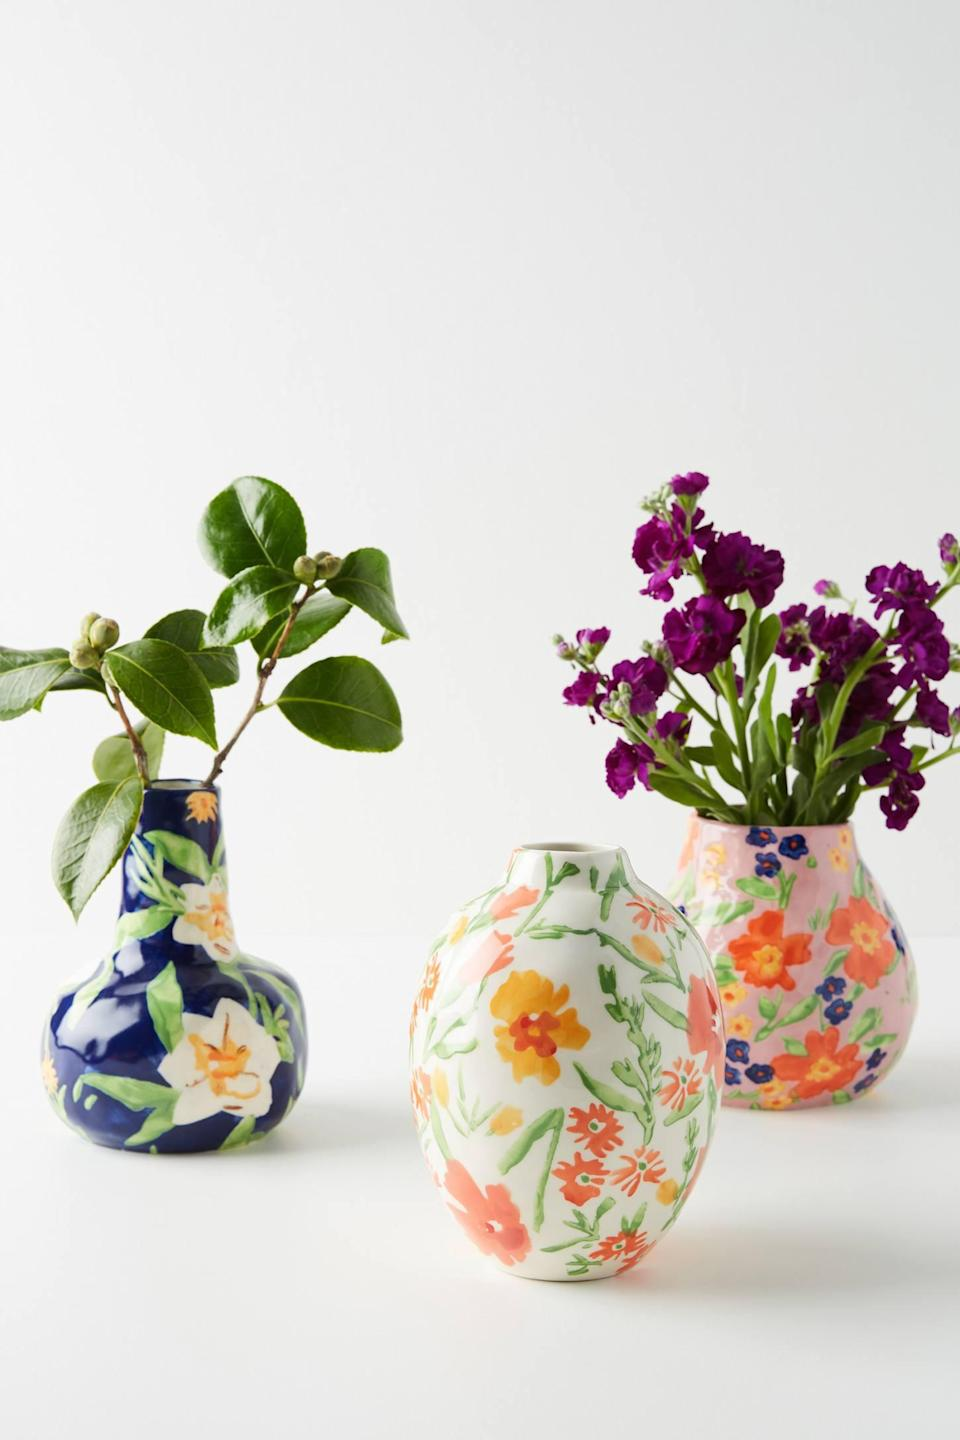 """<p><strong>Leah Goren Anthropologie</strong></p><p>anthropologie.com</p><p><strong>$24.00</strong></p><p><a href=""""https://go.redirectingat.com?id=74968X1596630&url=https%3A%2F%2Fwww.anthropologie.com%2Fshop%2Fleah-goren-marcella-vase&sref=https%3A%2F%2Fwww.womansday.com%2Flife%2Fg955%2Fcheap-gifts-for-women%2F"""" rel=""""nofollow noopener"""" target=""""_blank"""" data-ylk=""""slk:Shop Now"""" class=""""link rapid-noclick-resp"""">Shop Now</a></p><p>Sure, she'll love flowers in a vase, but flowers on a vase will provide twice the smiles.</p>"""